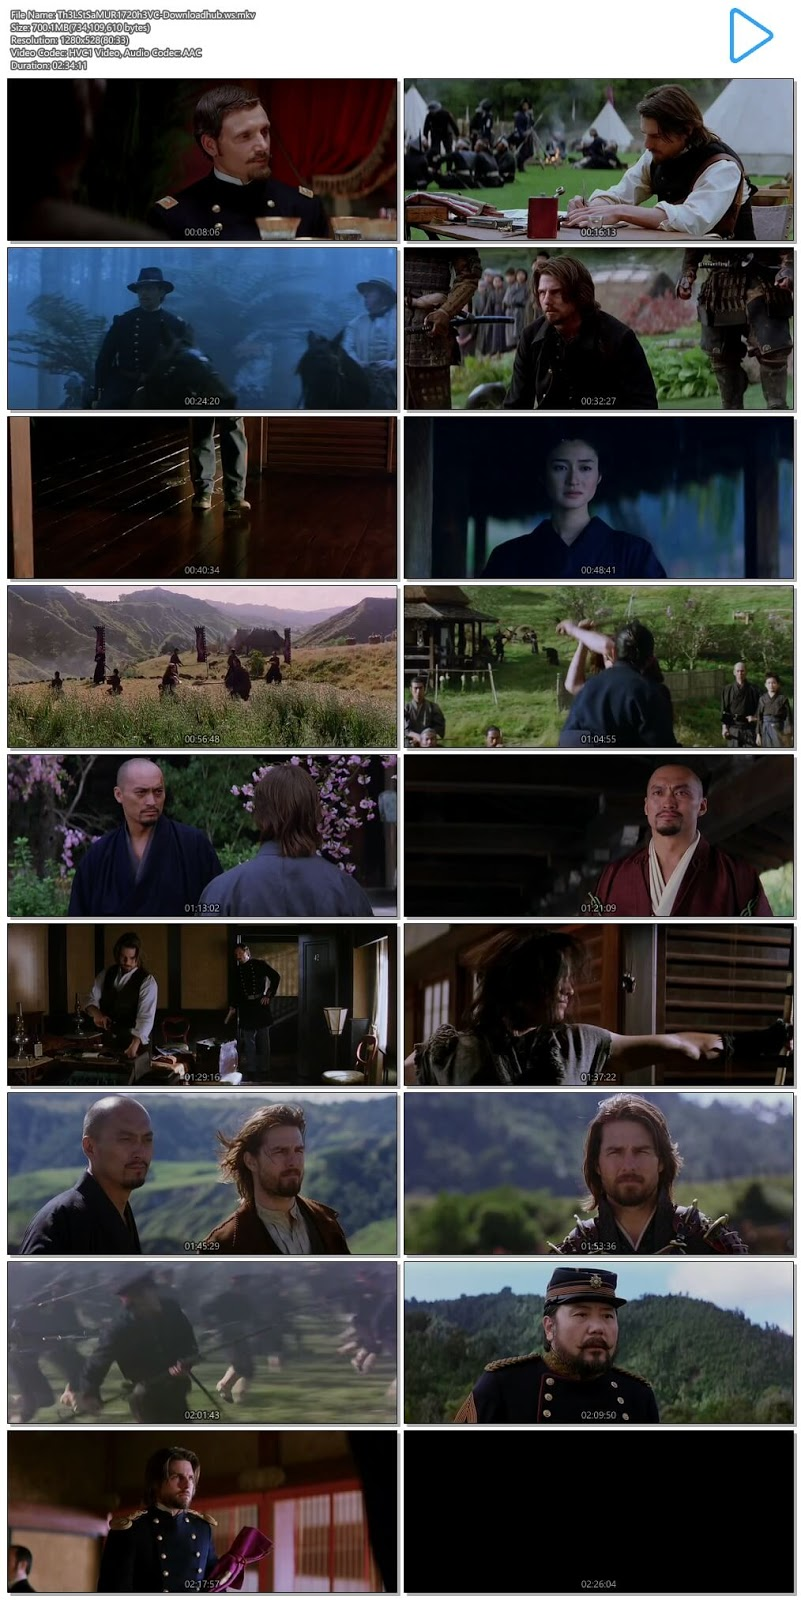 The Last Samurai 2003 Hindi Dual Audio 720p HEVC BluRay Free Download